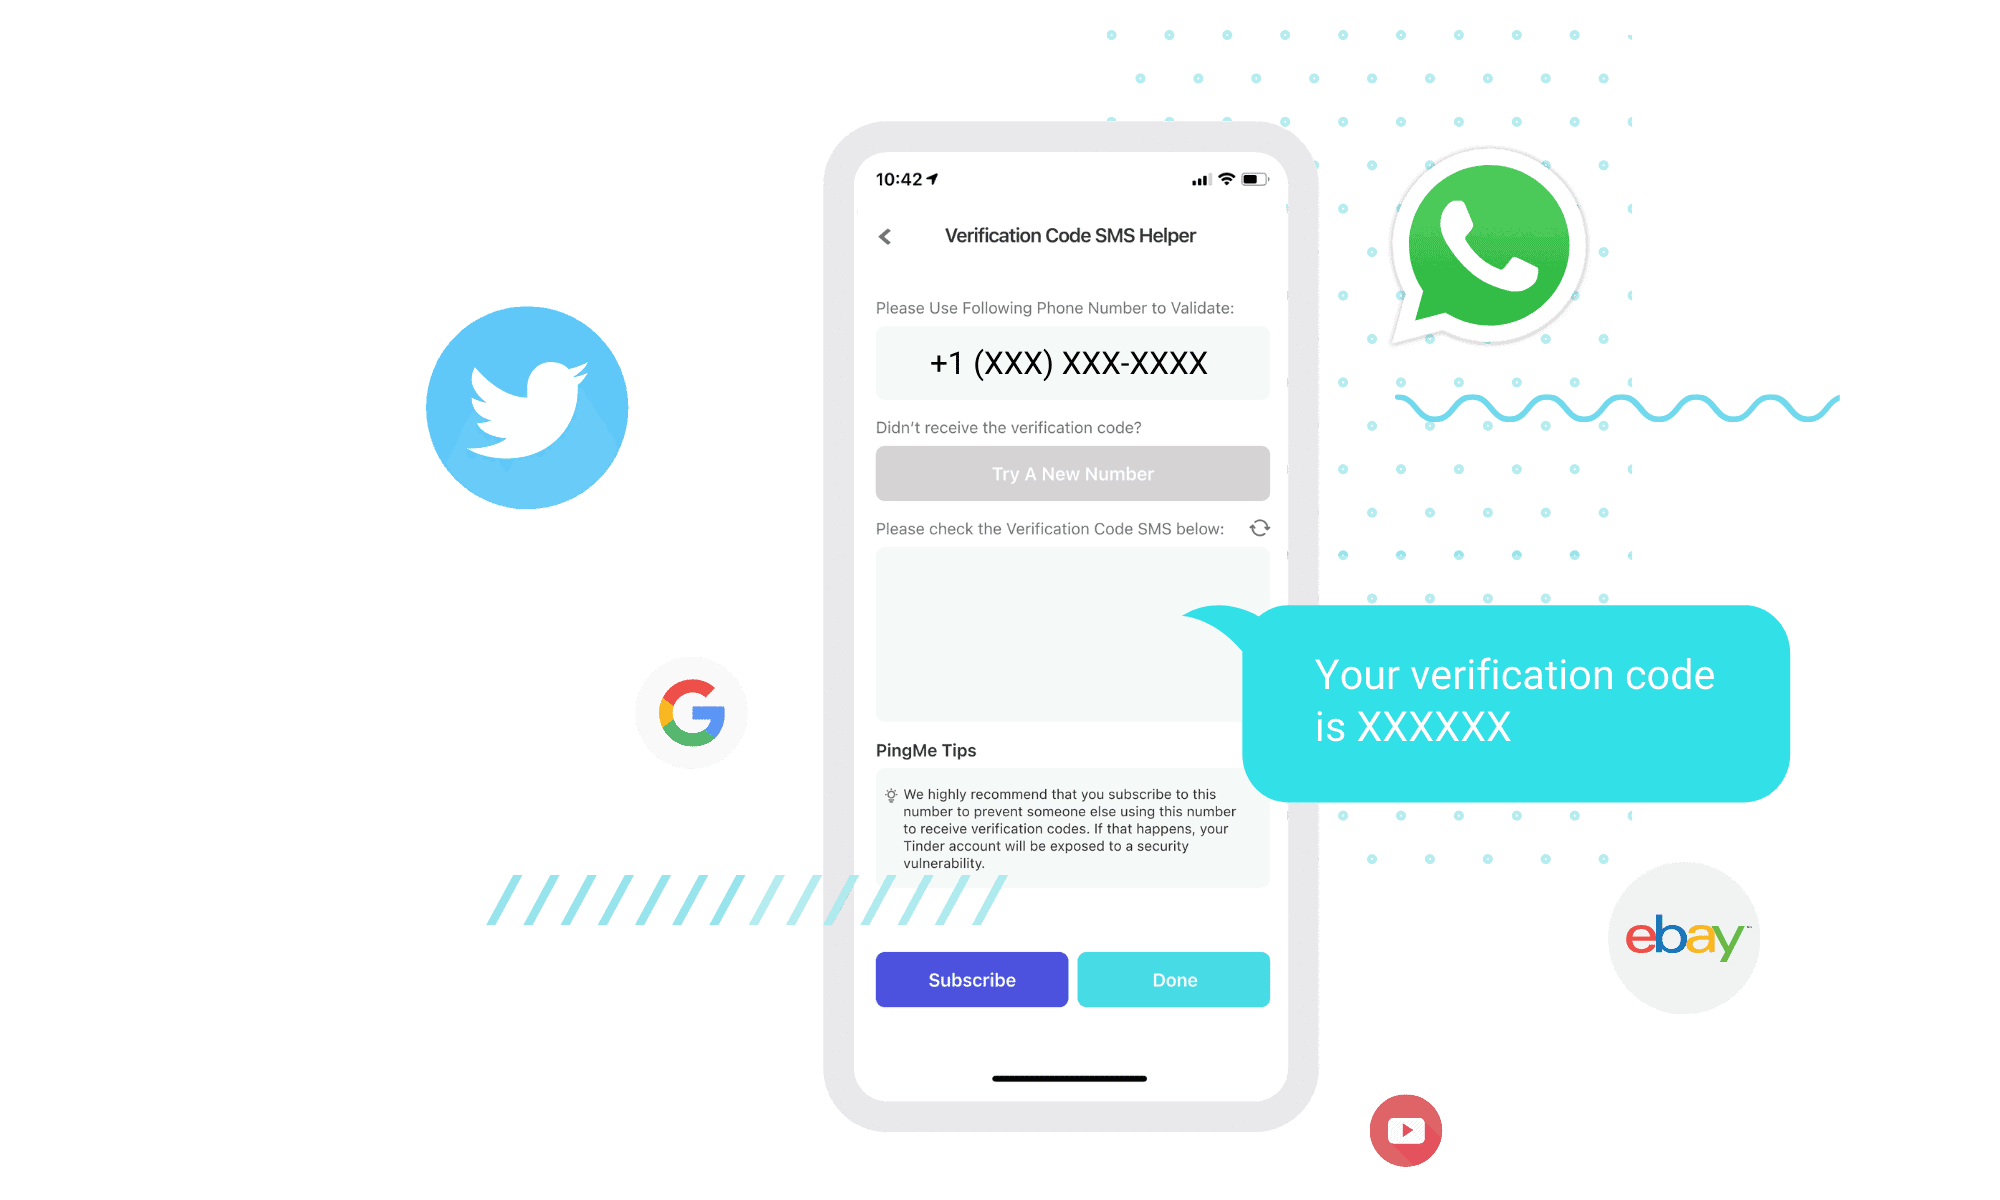 mobile app received verification code sms